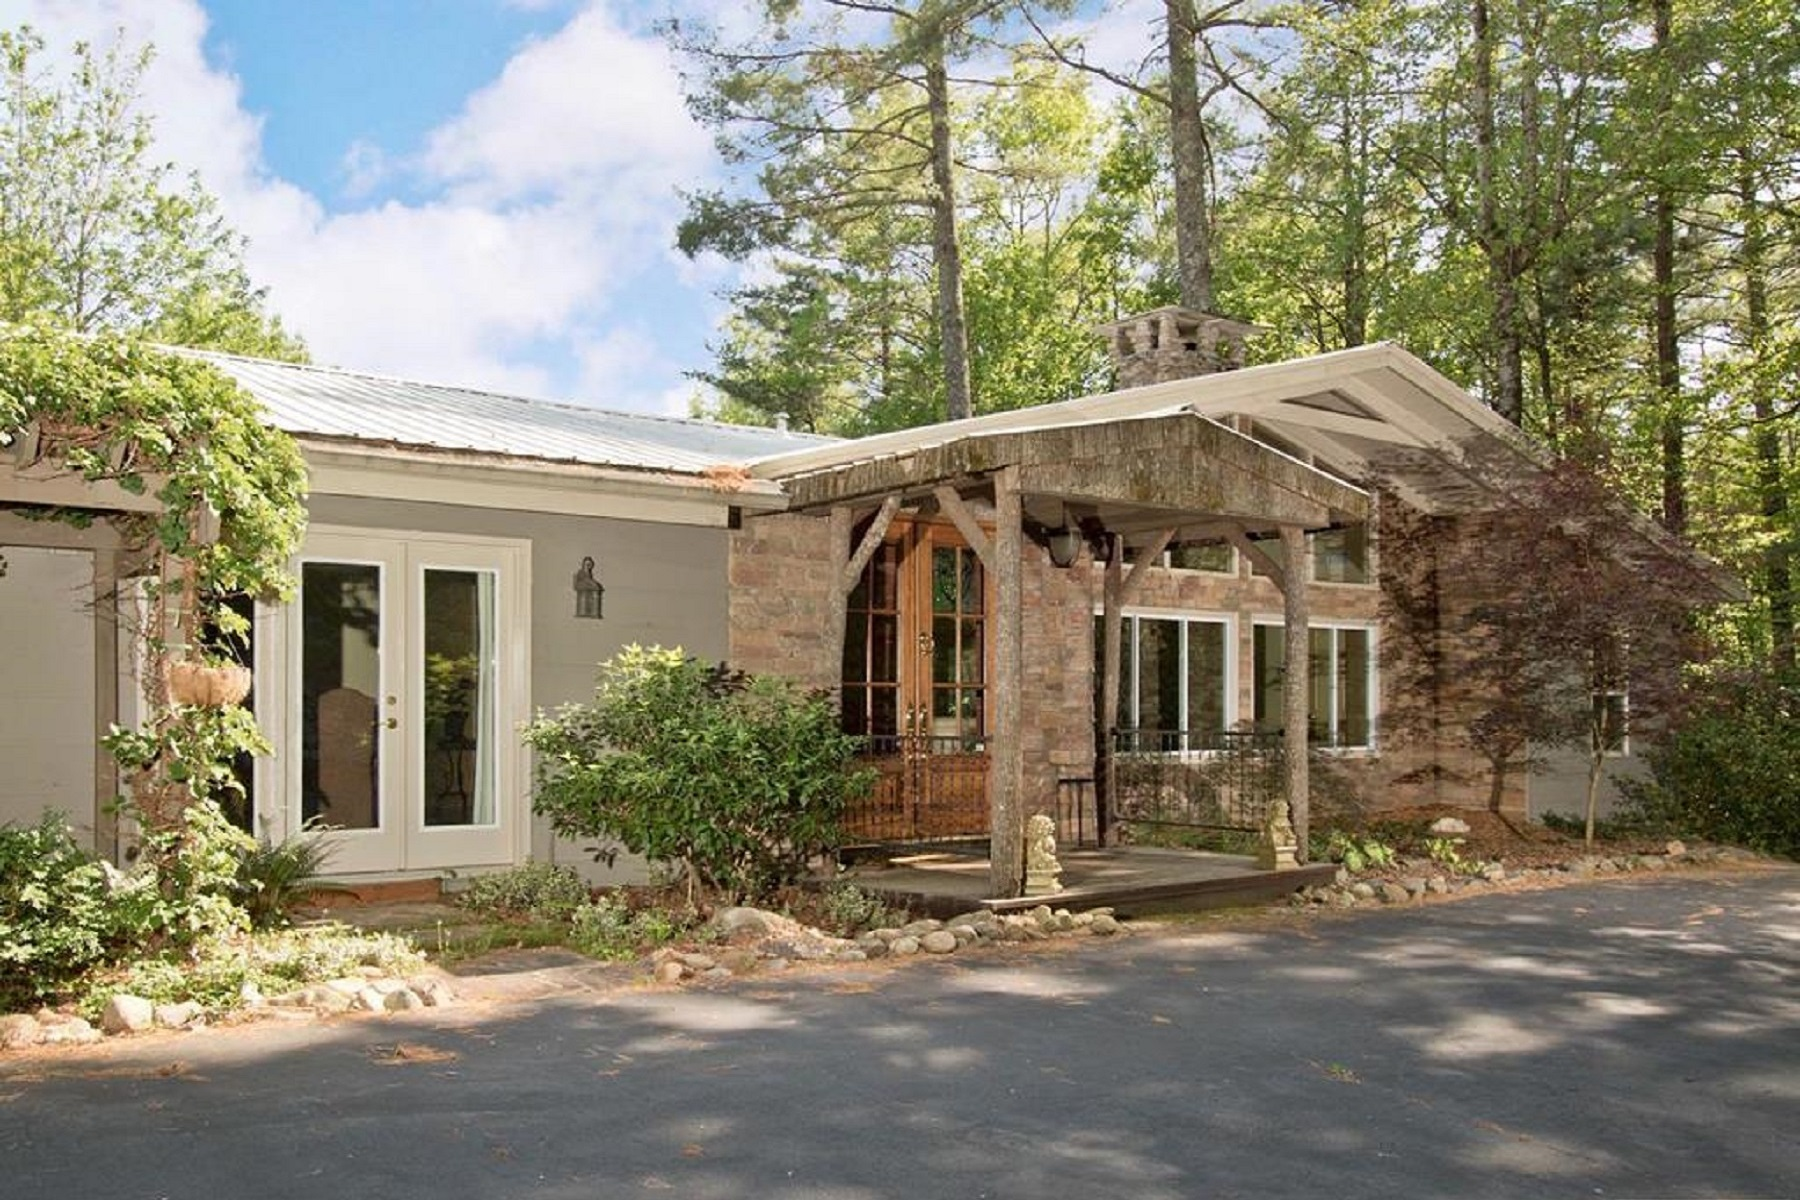 Single Family Home for Active at 2133 West Christy Trail Sapphire, North Carolina 28774 United States